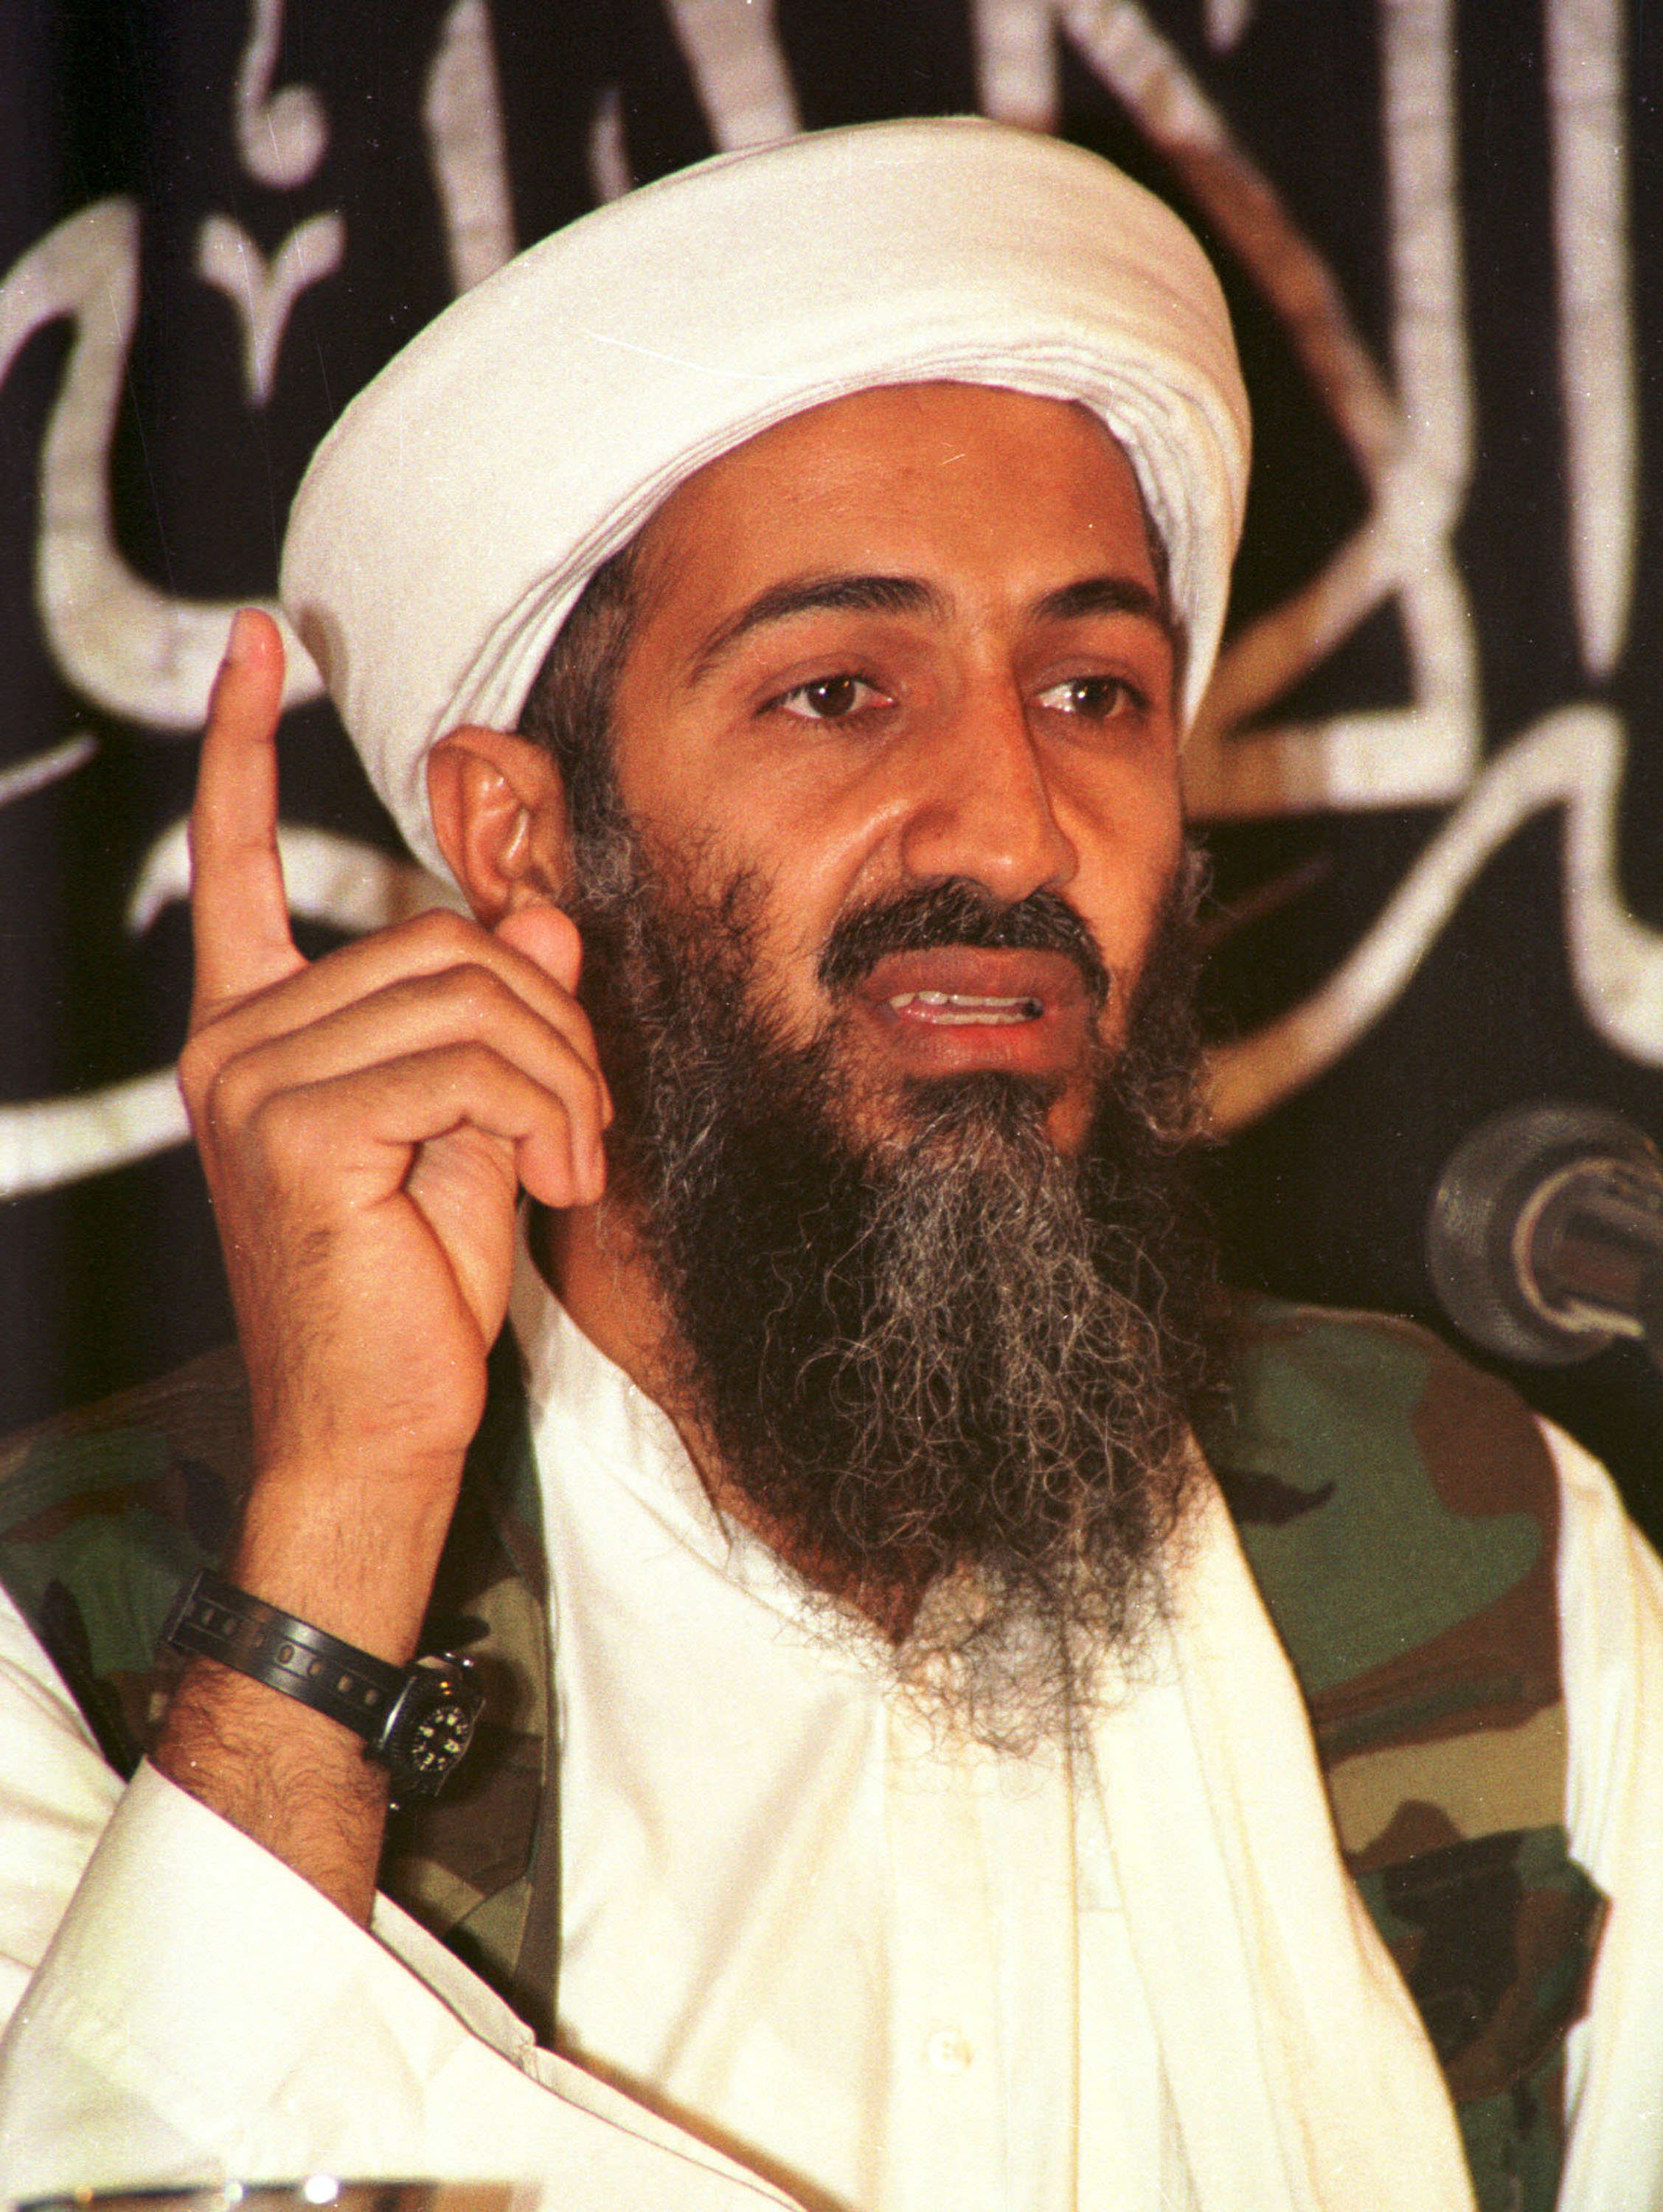 Osama Bin Ladens Son Vows Revenge On U.S. In Chilling Message GettyImages 1776472